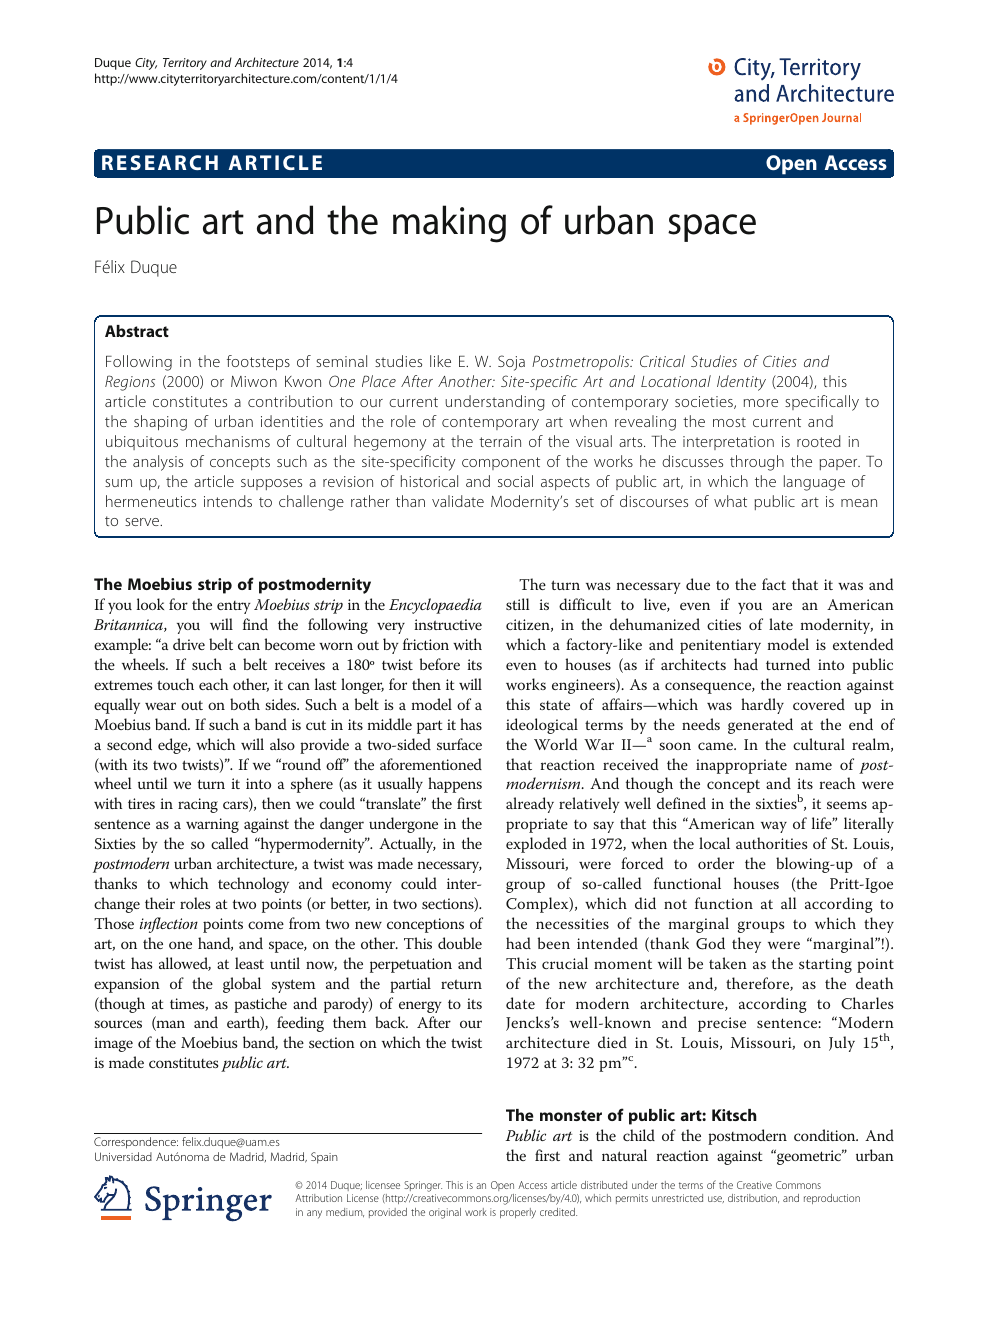 Public art and the making of urban space – topic of research